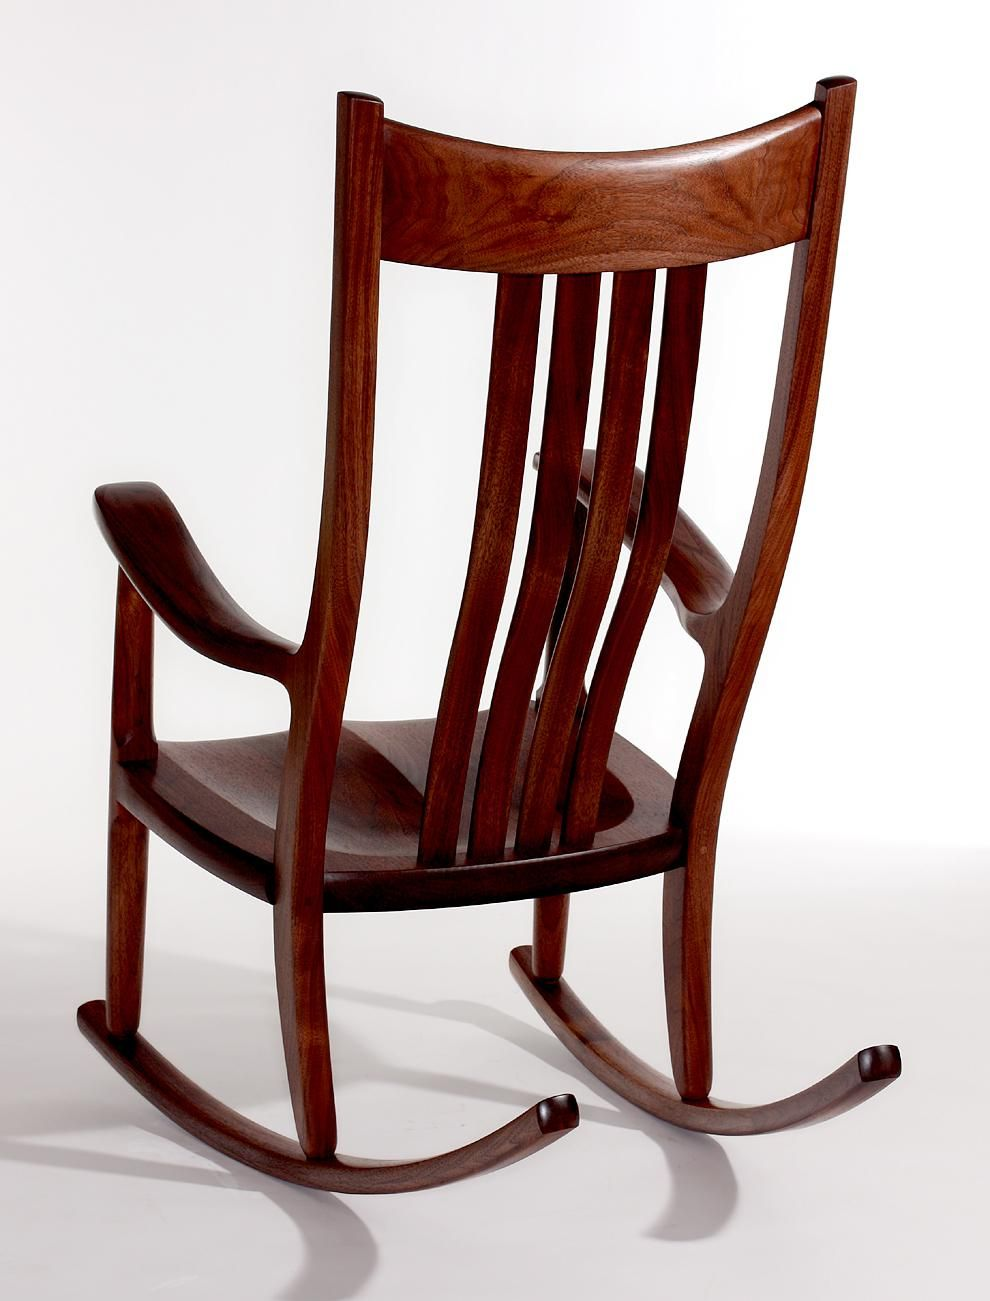 rocking chair fine woodworking iron outdoor chairs gary weeks in walnut furniture pinterest